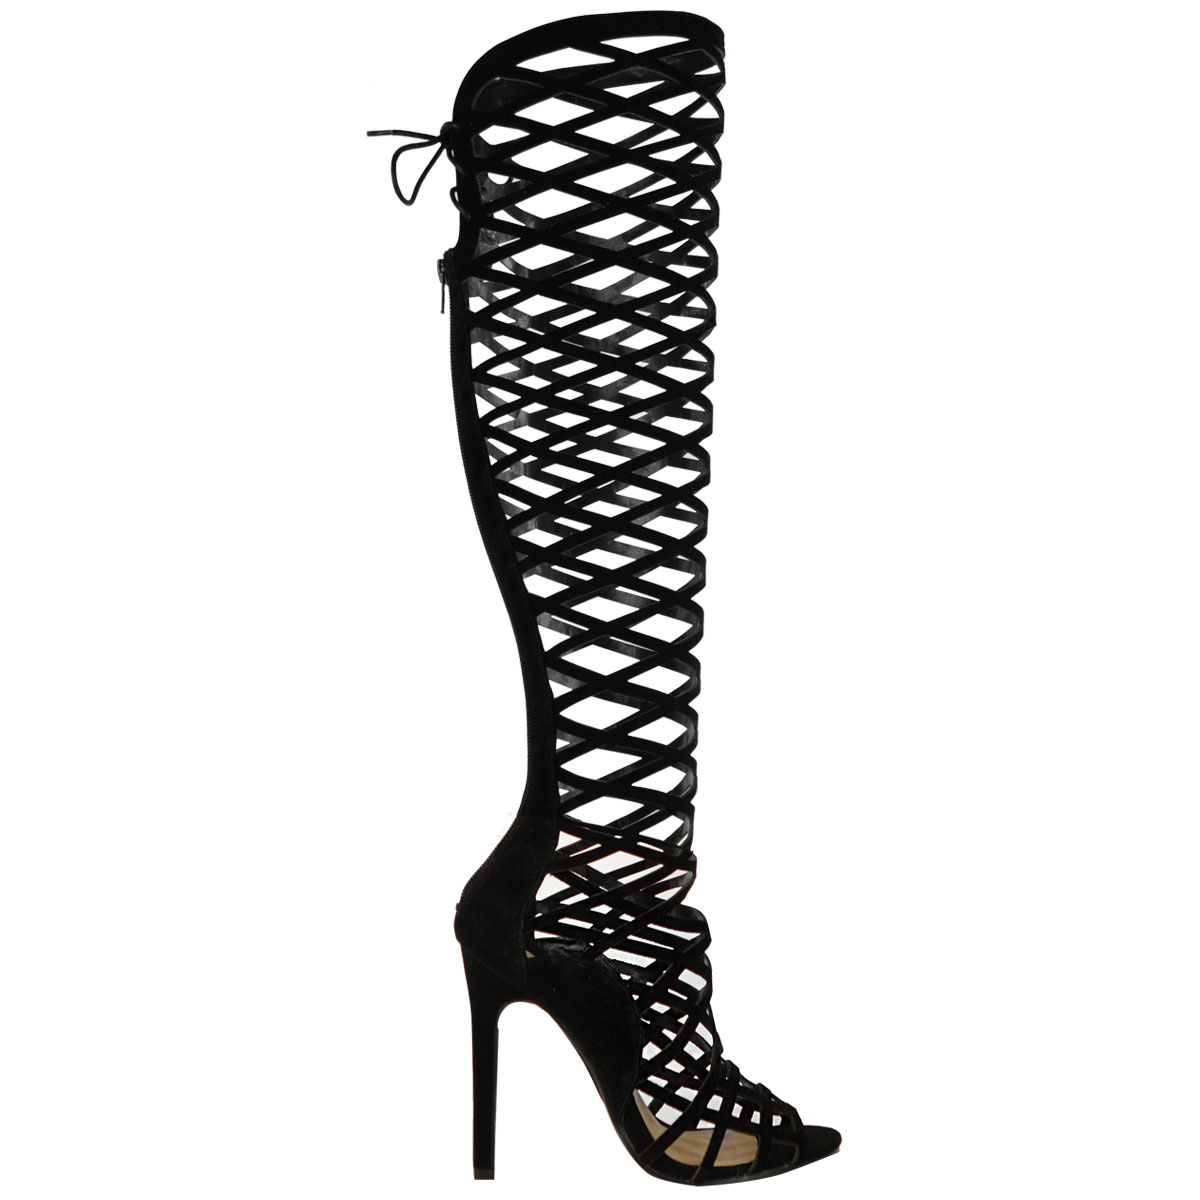 La S Womens Cut Out Lace Knee High Heel Boots Gladiator Sandals Strappy Size